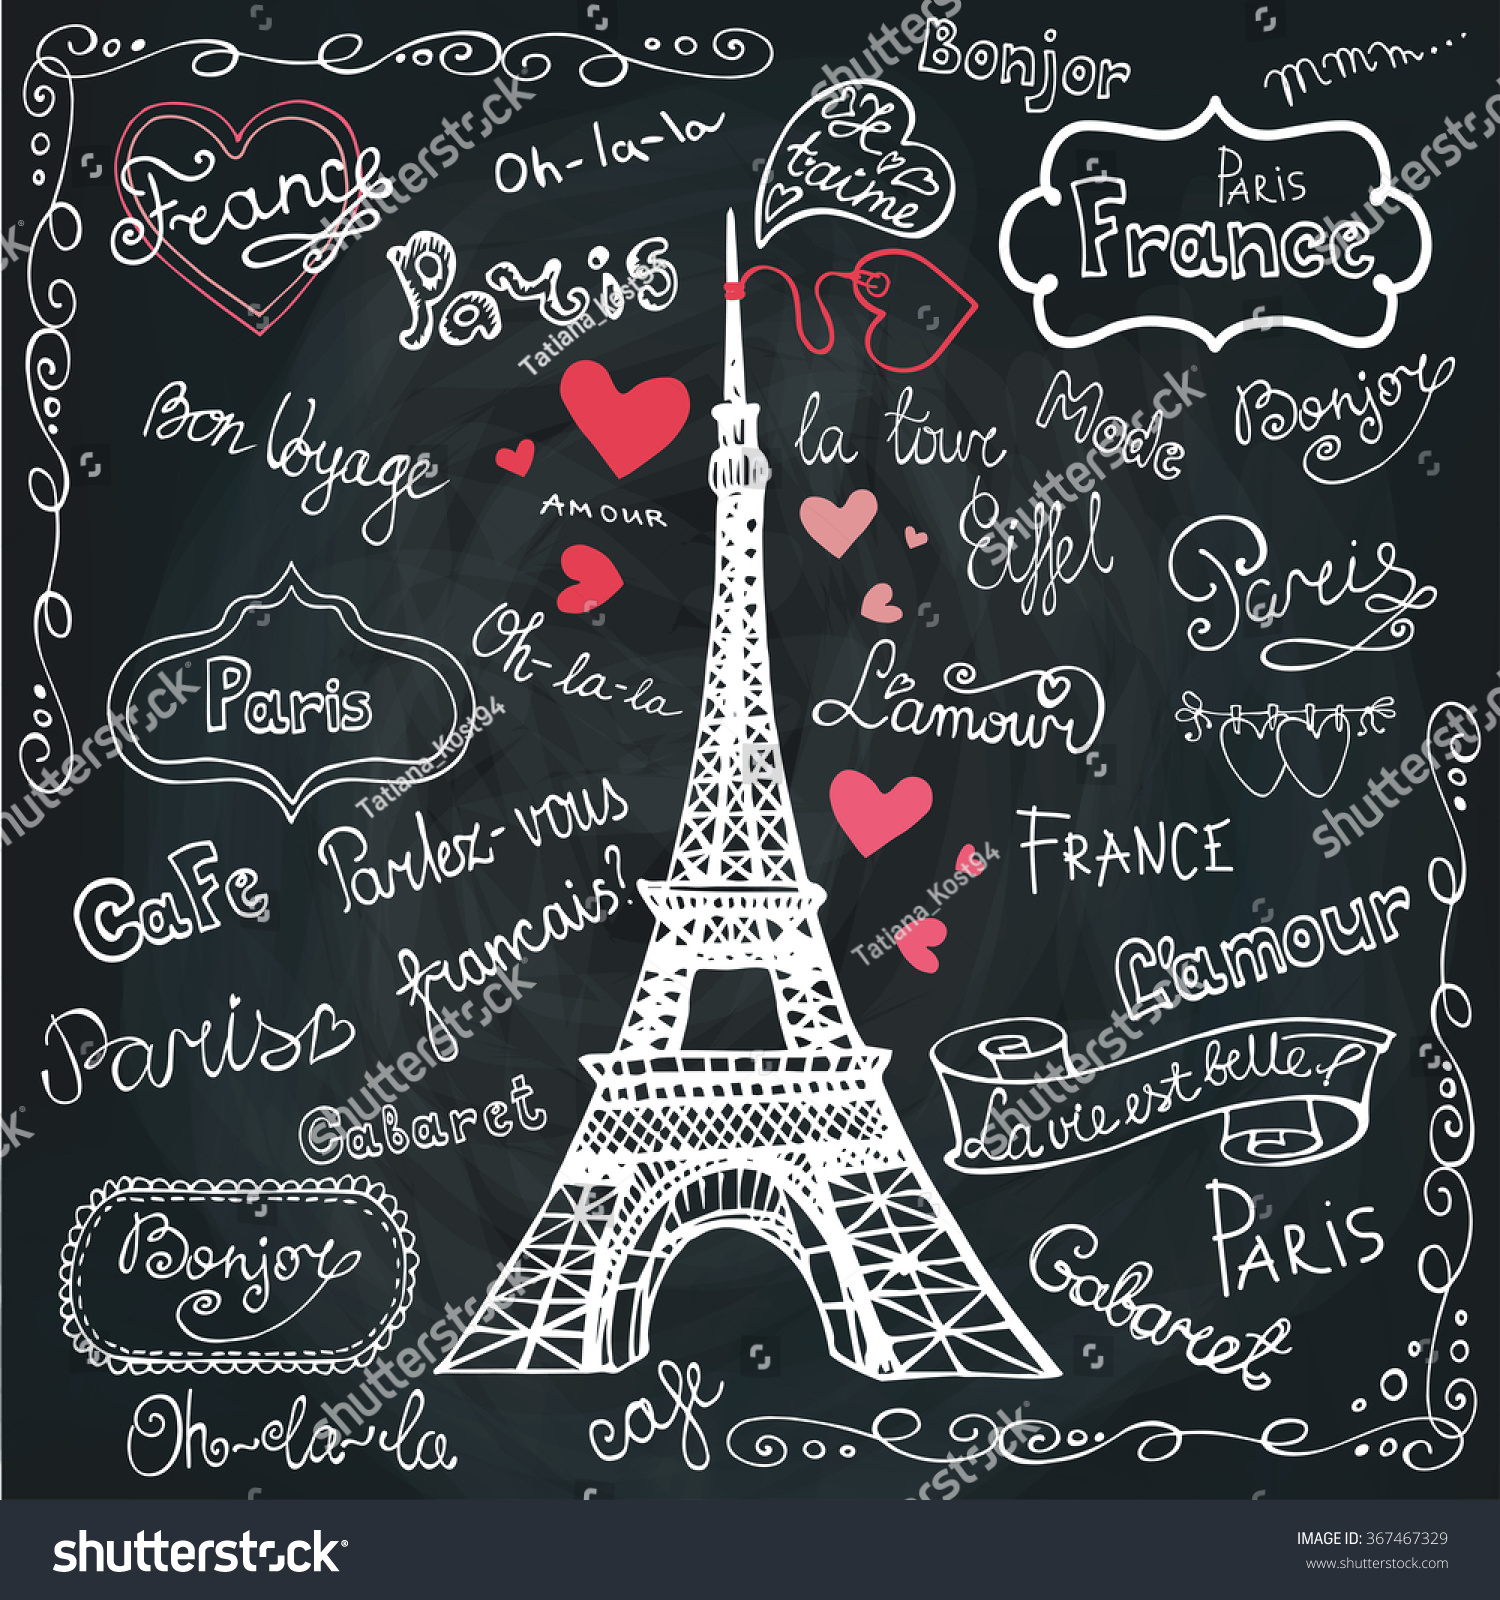 beautiful french words wallpaper - photo #40